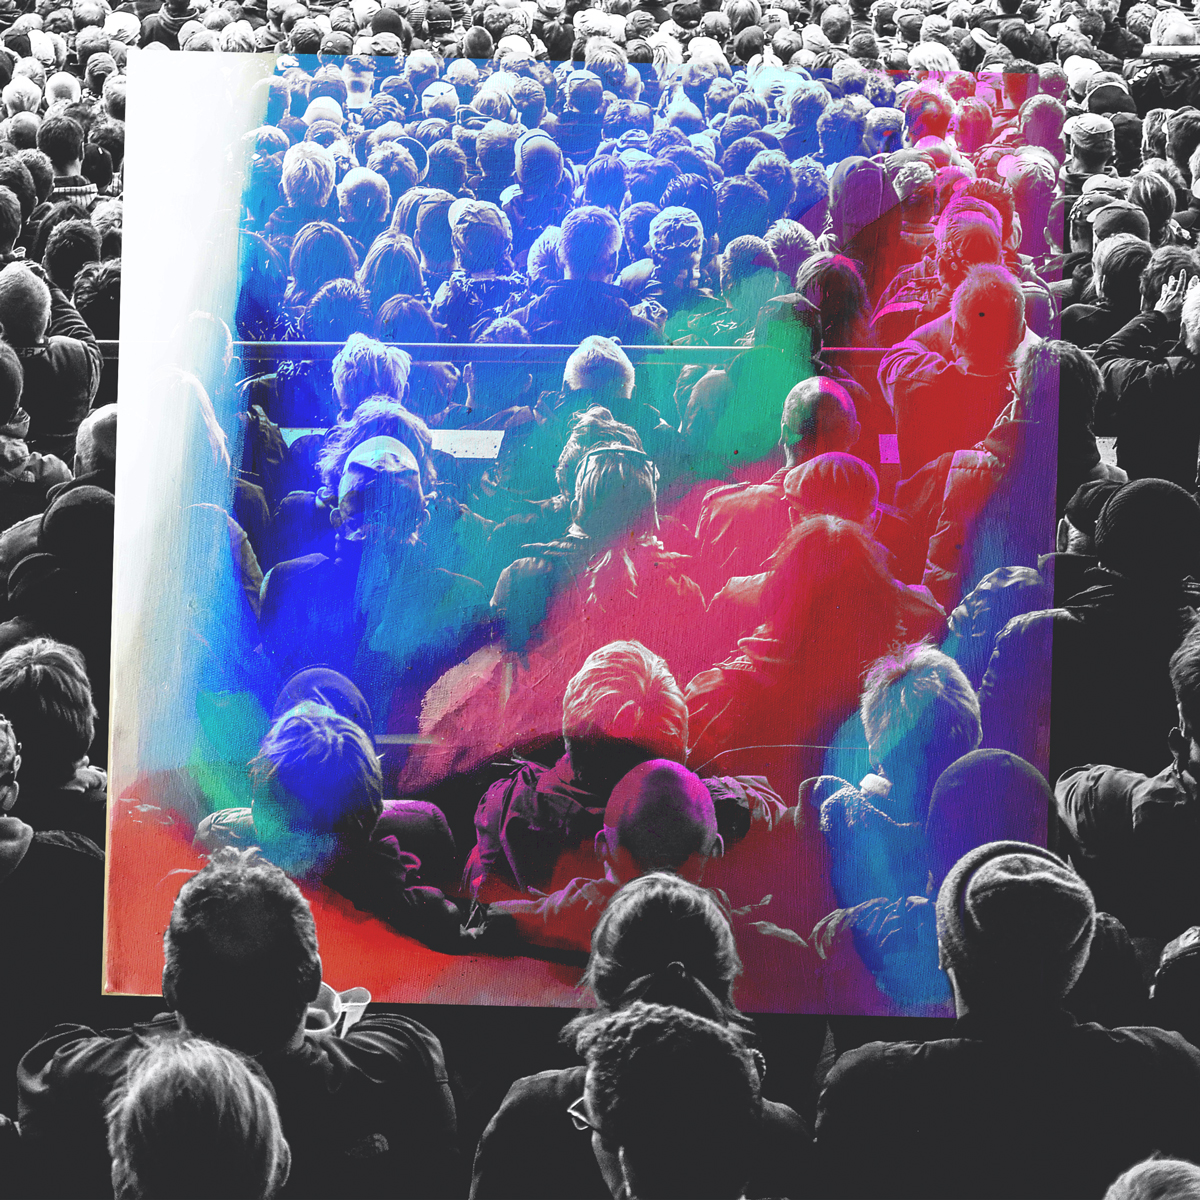 Crowd, colorful overlay